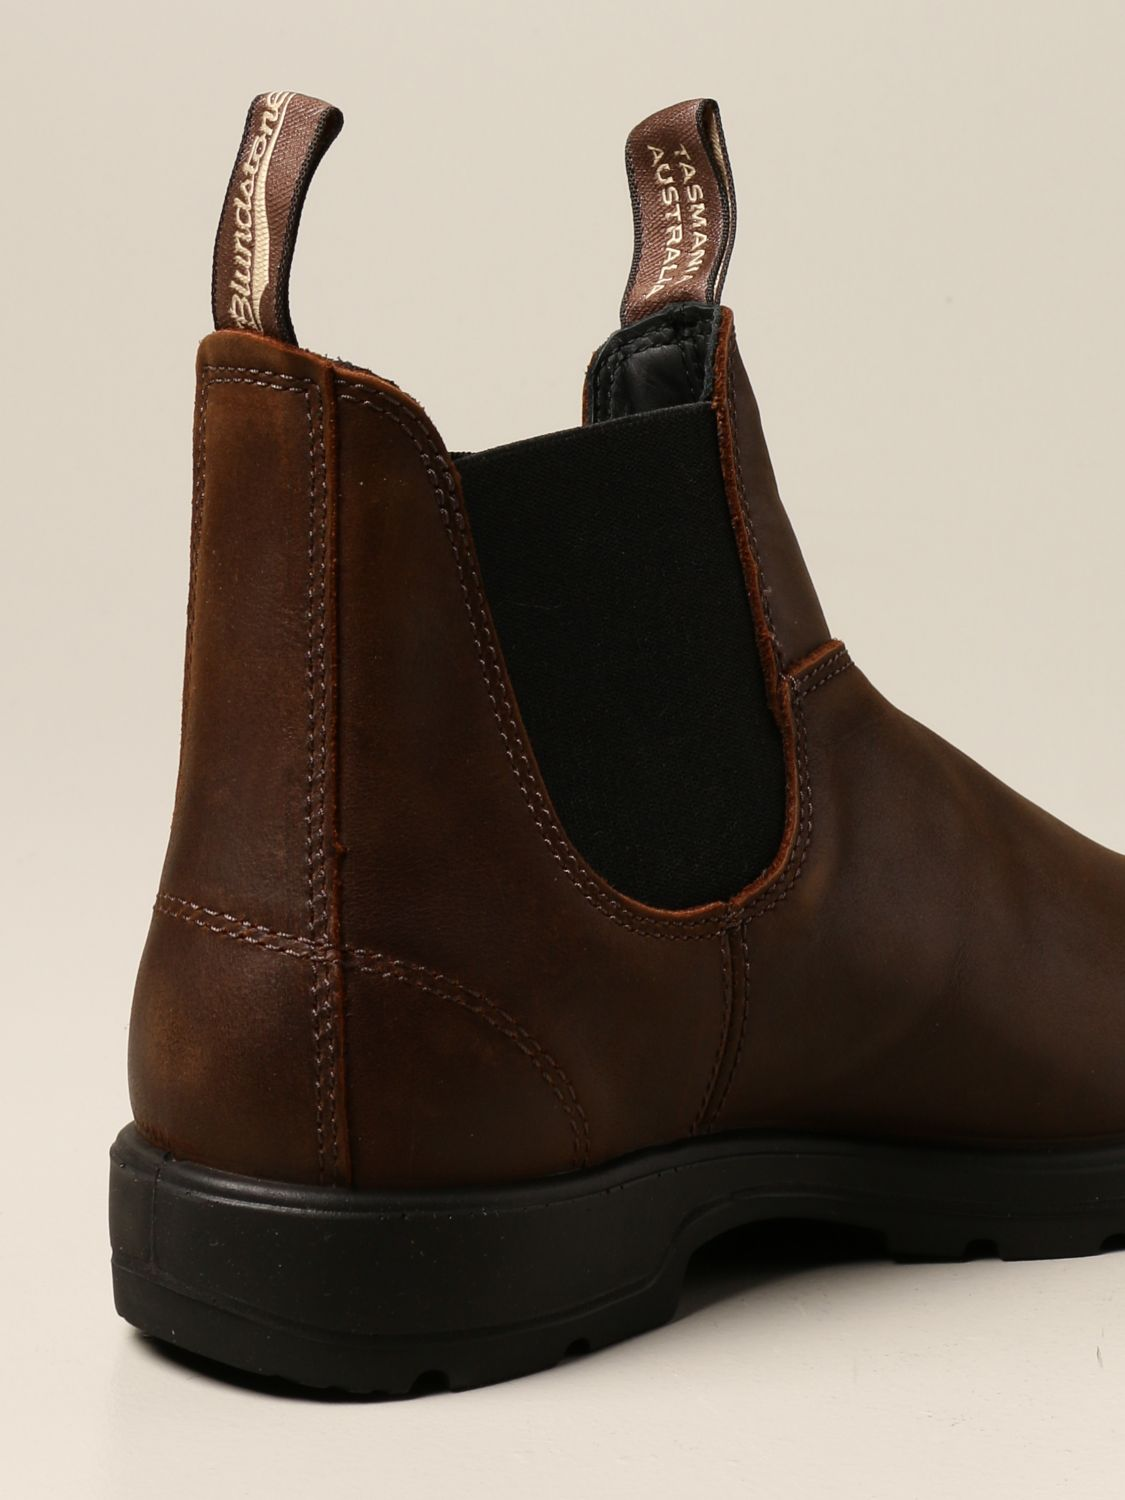 Boots Blundstone: Boots men Blundstone brown 3